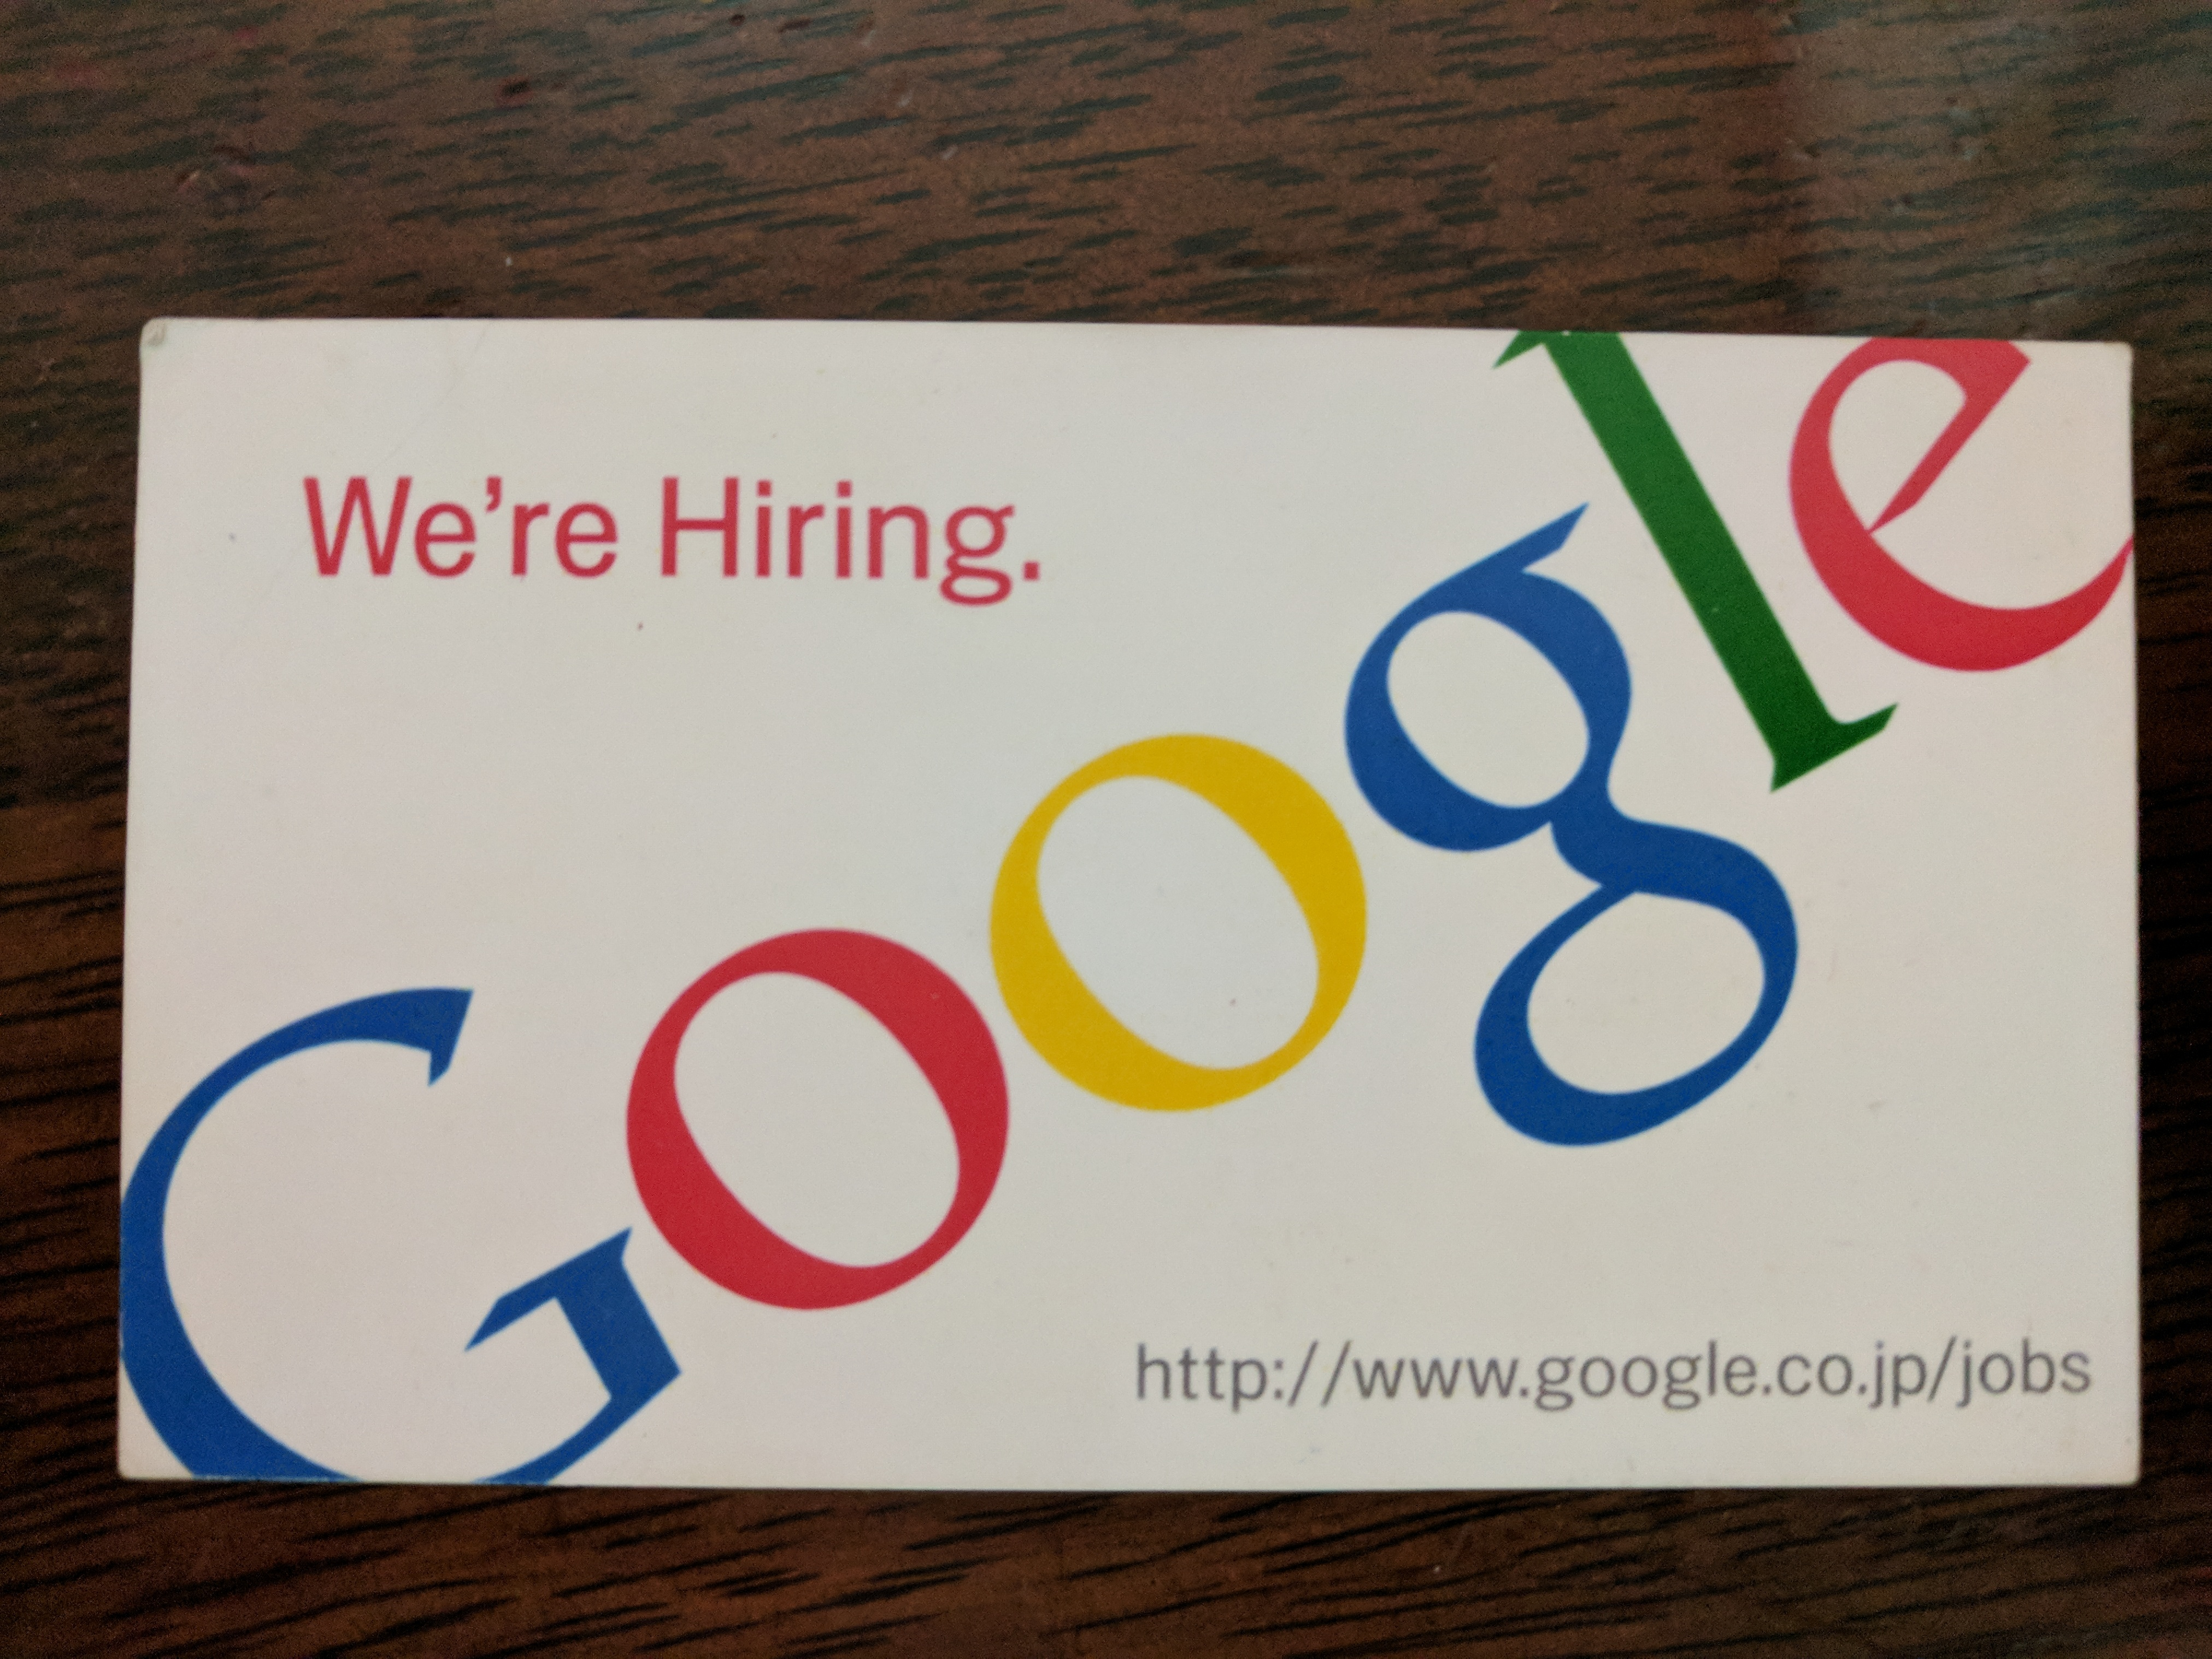 Got one of these at a Google event back in 2006...